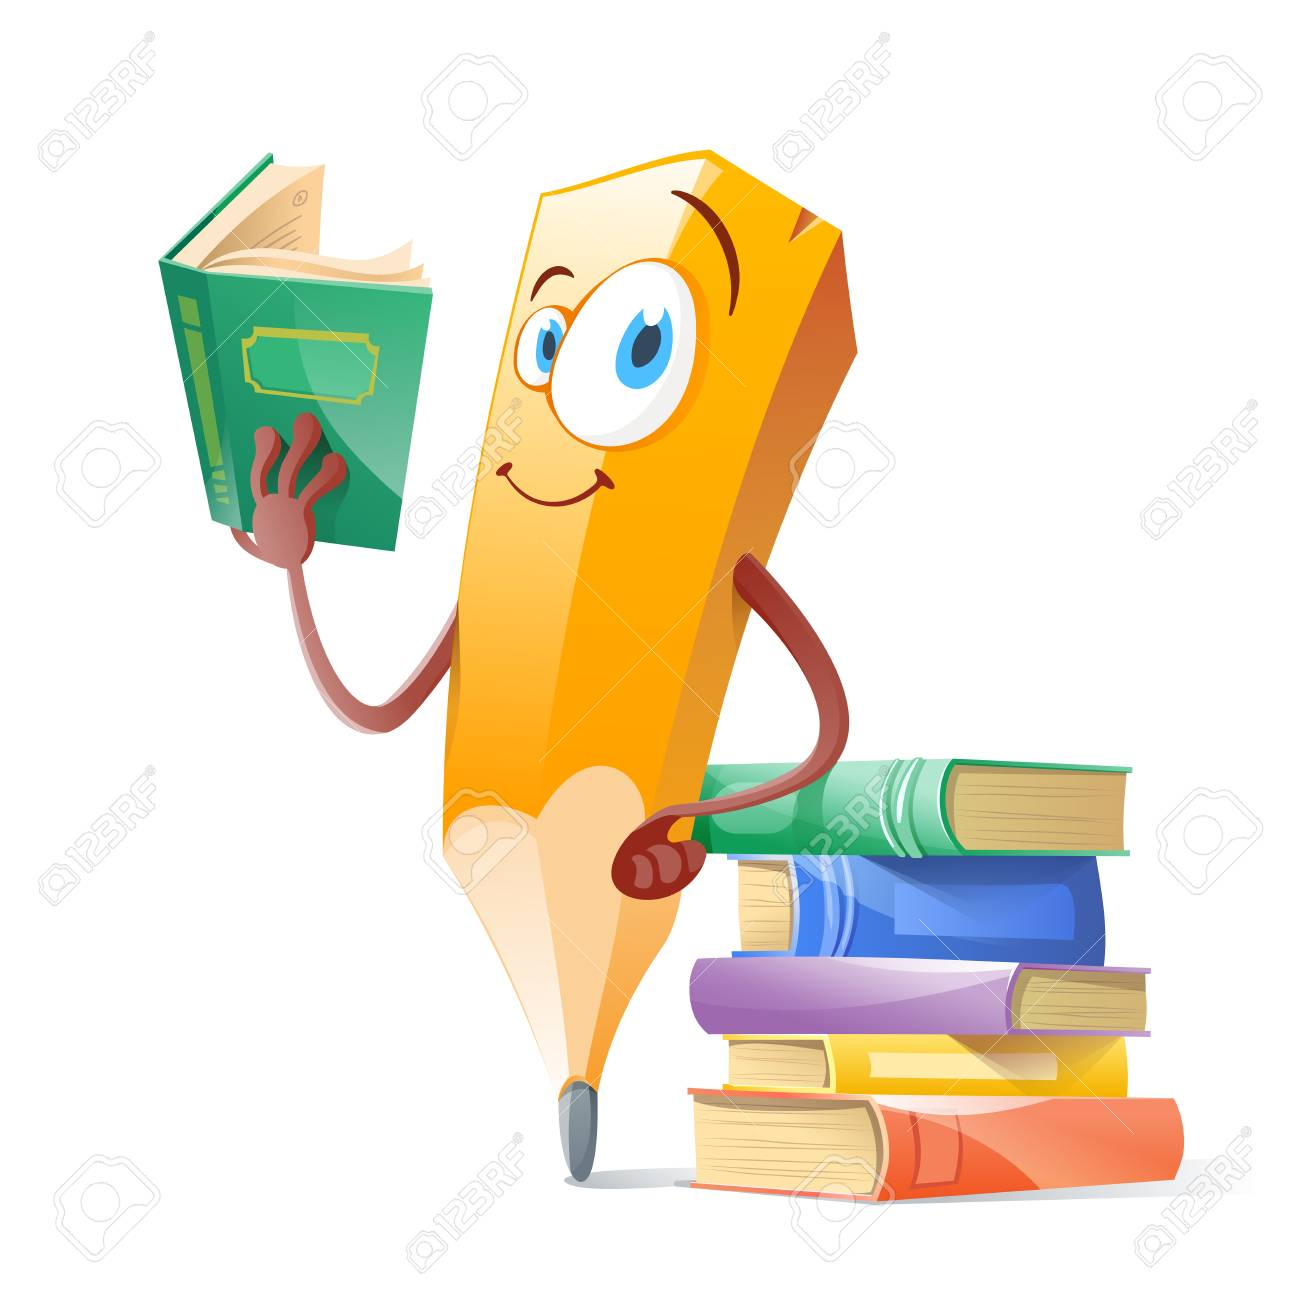 Funny pensil with books. Education concept. - 94281333